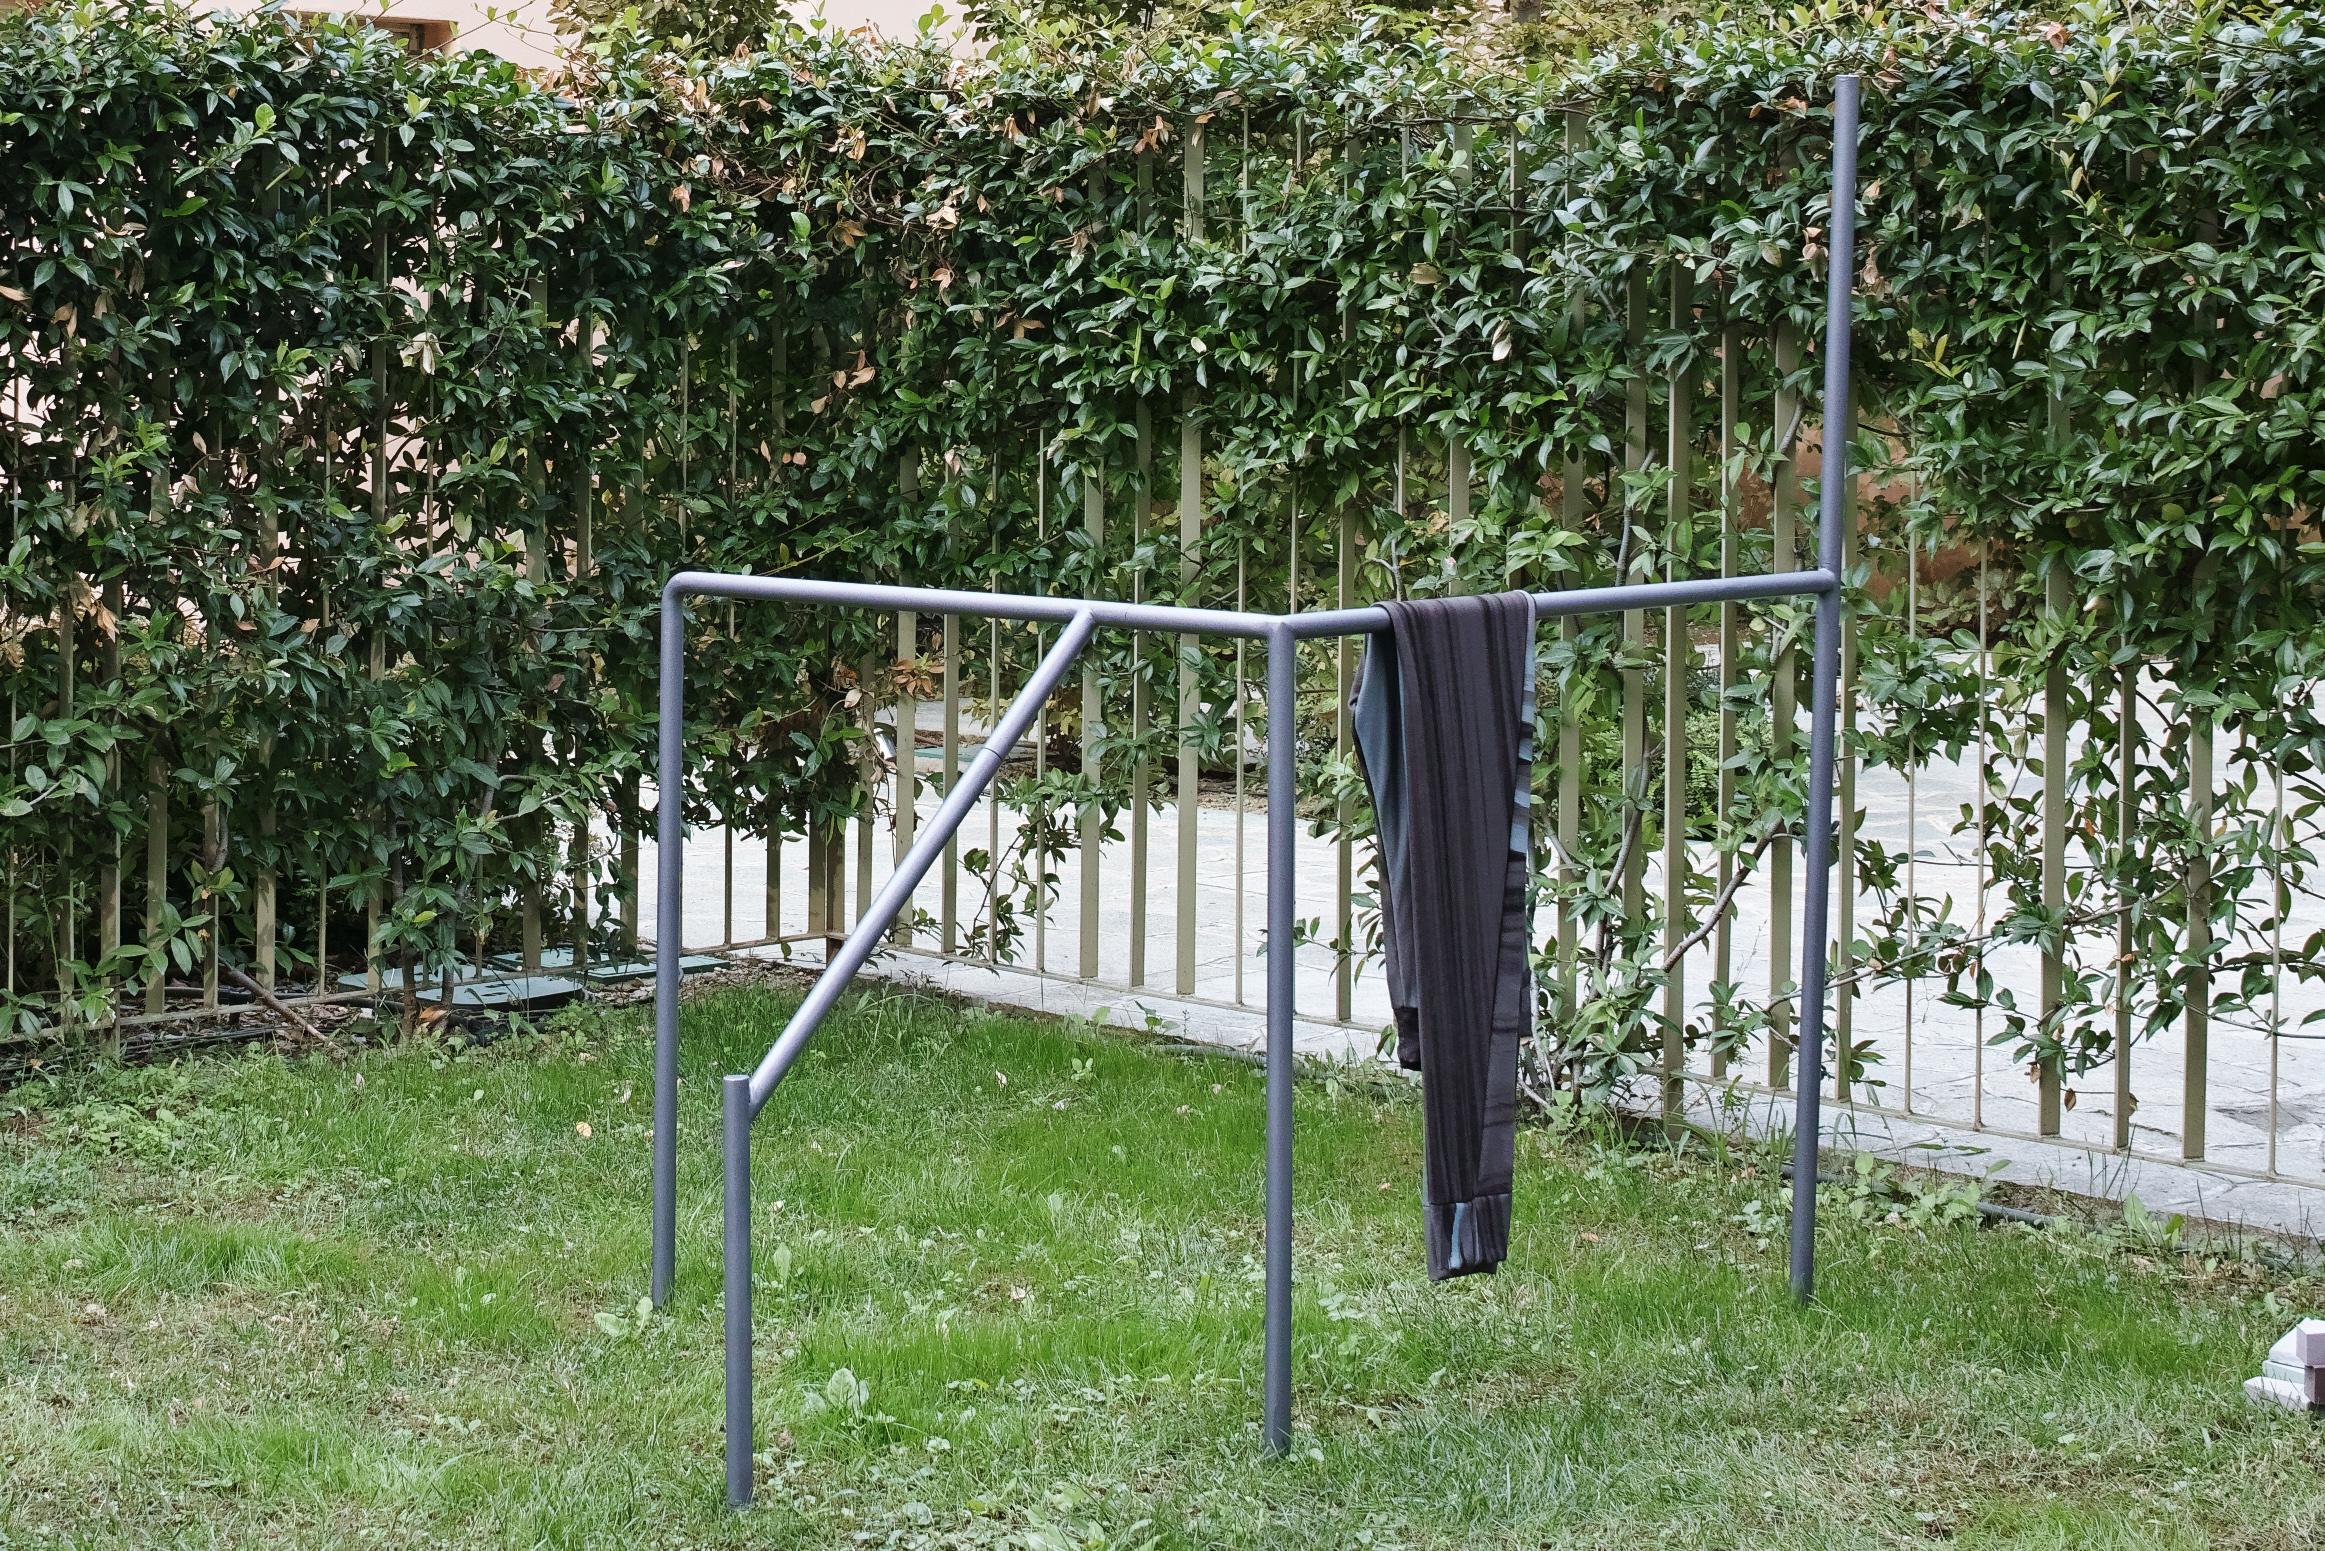 Powder-coated metal structure, sweatpants